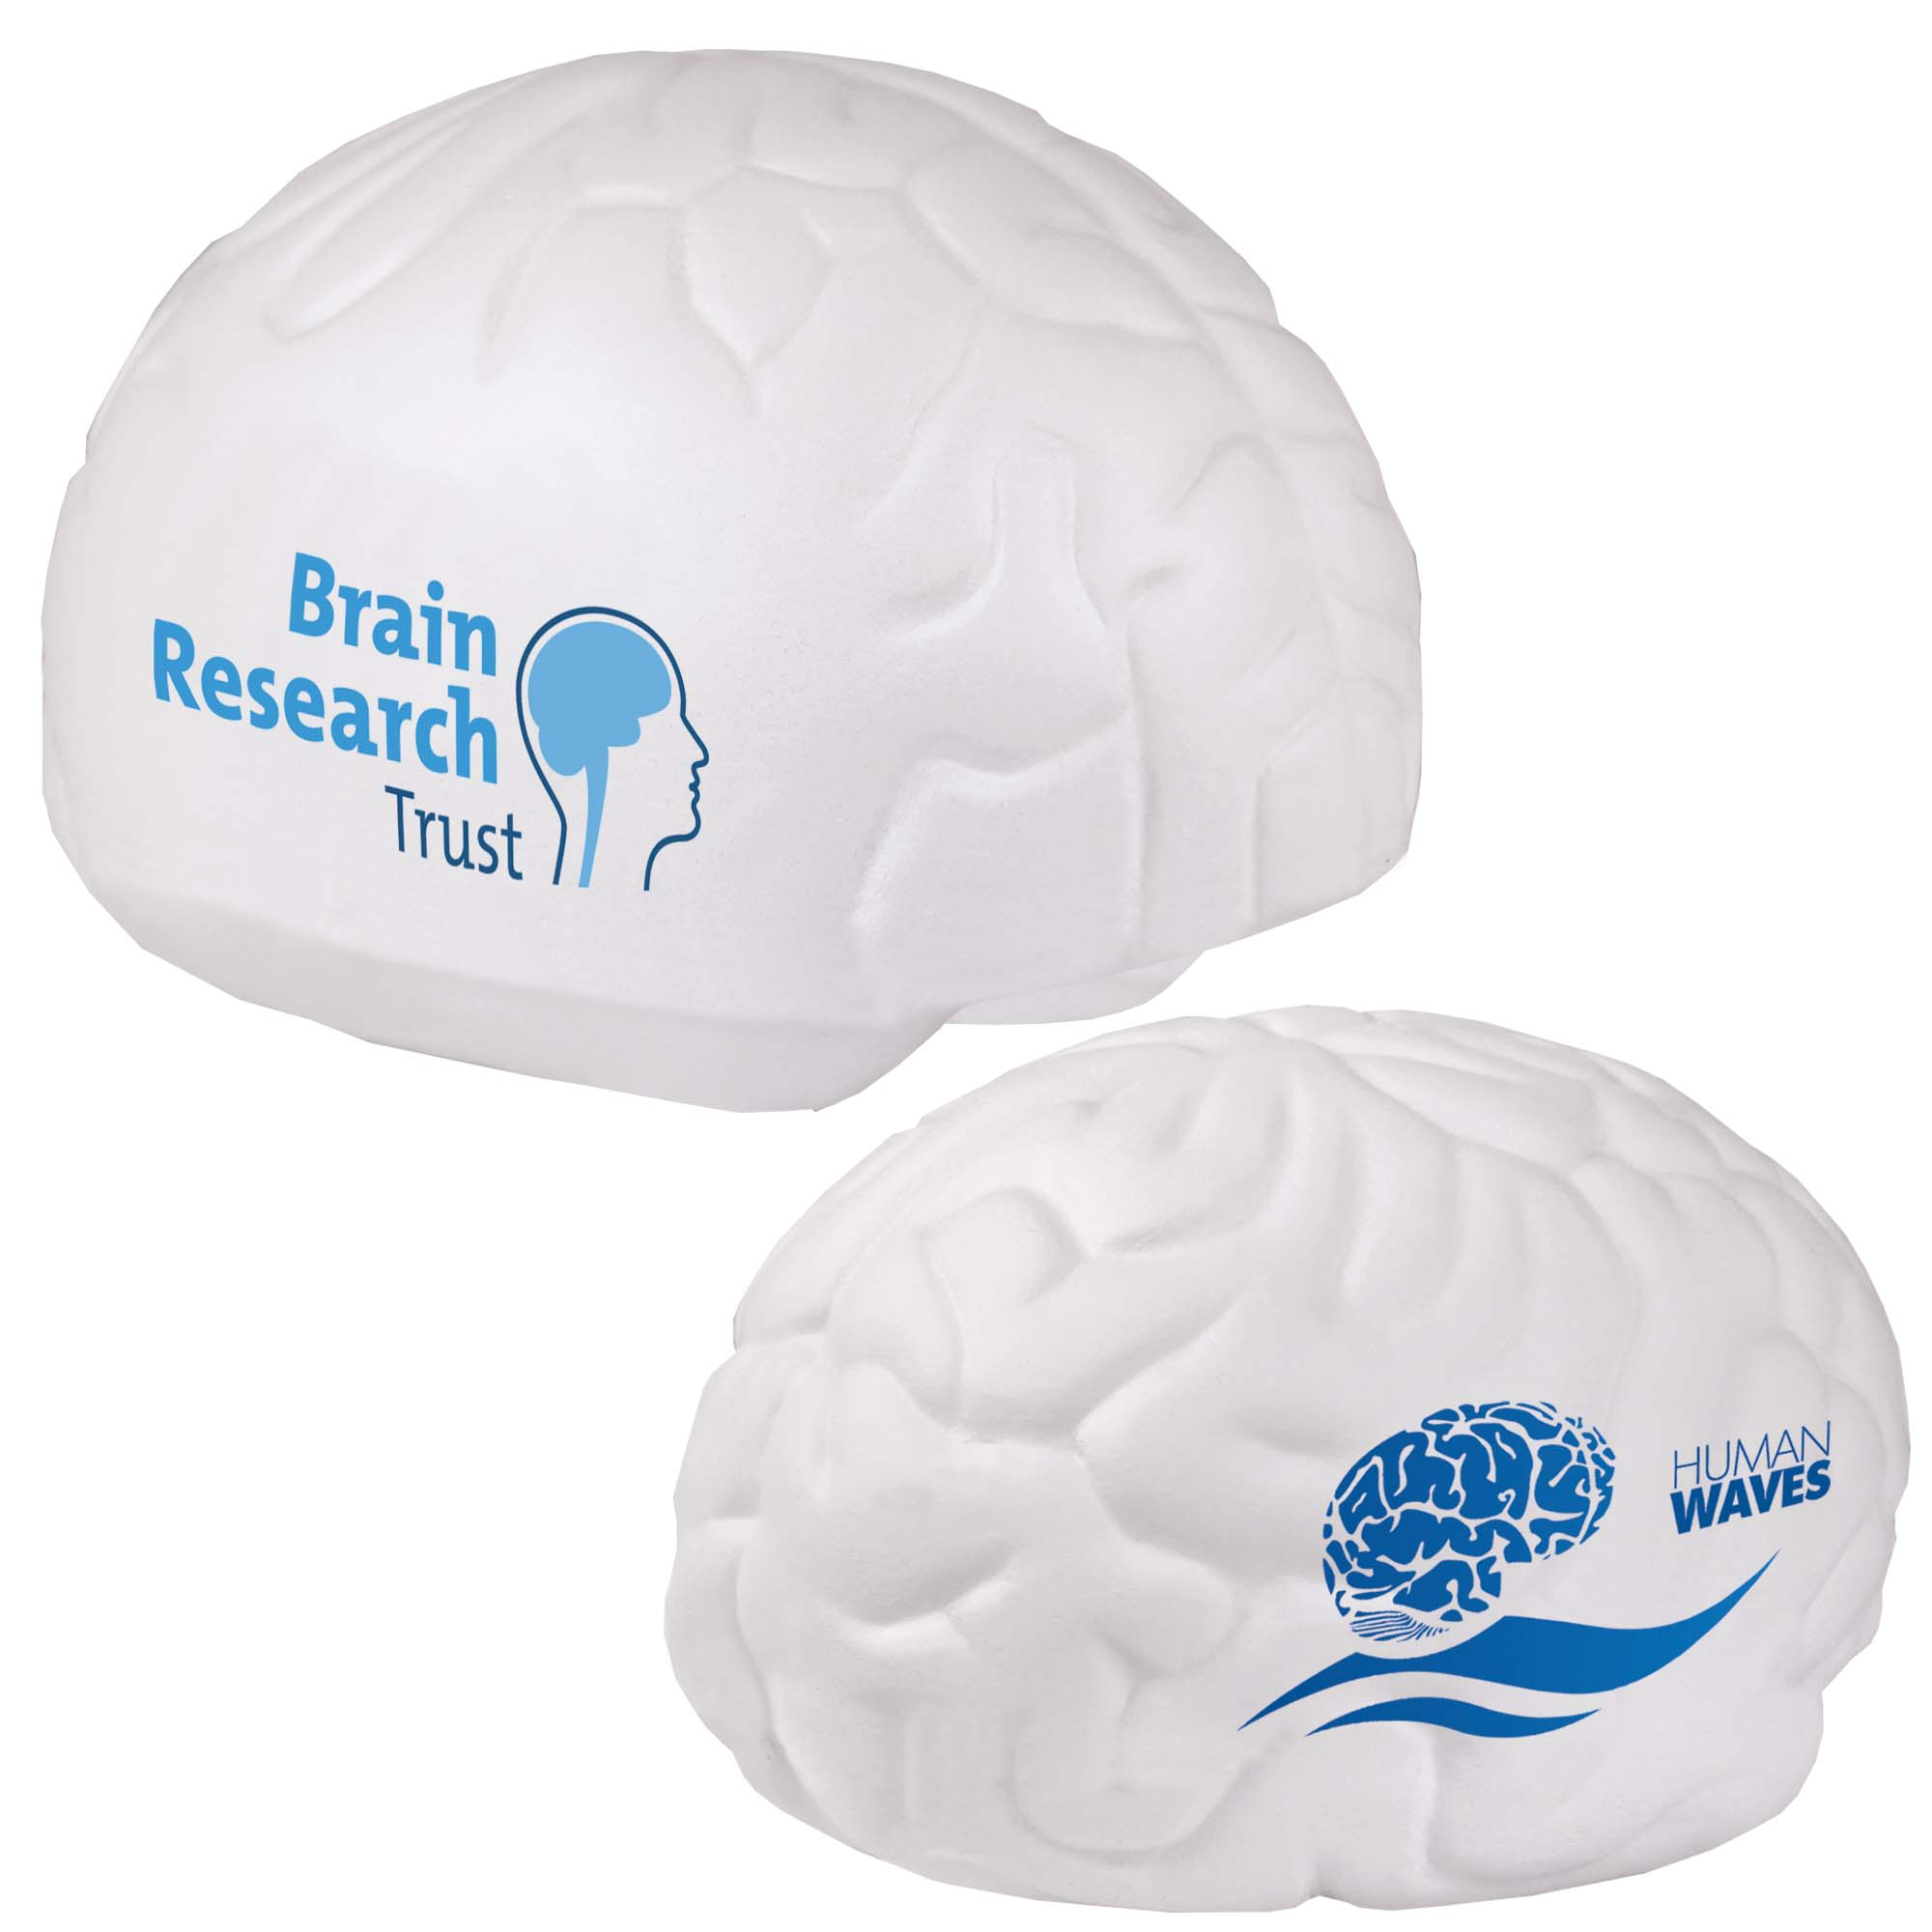 Promotional Brain Large Stress Toy